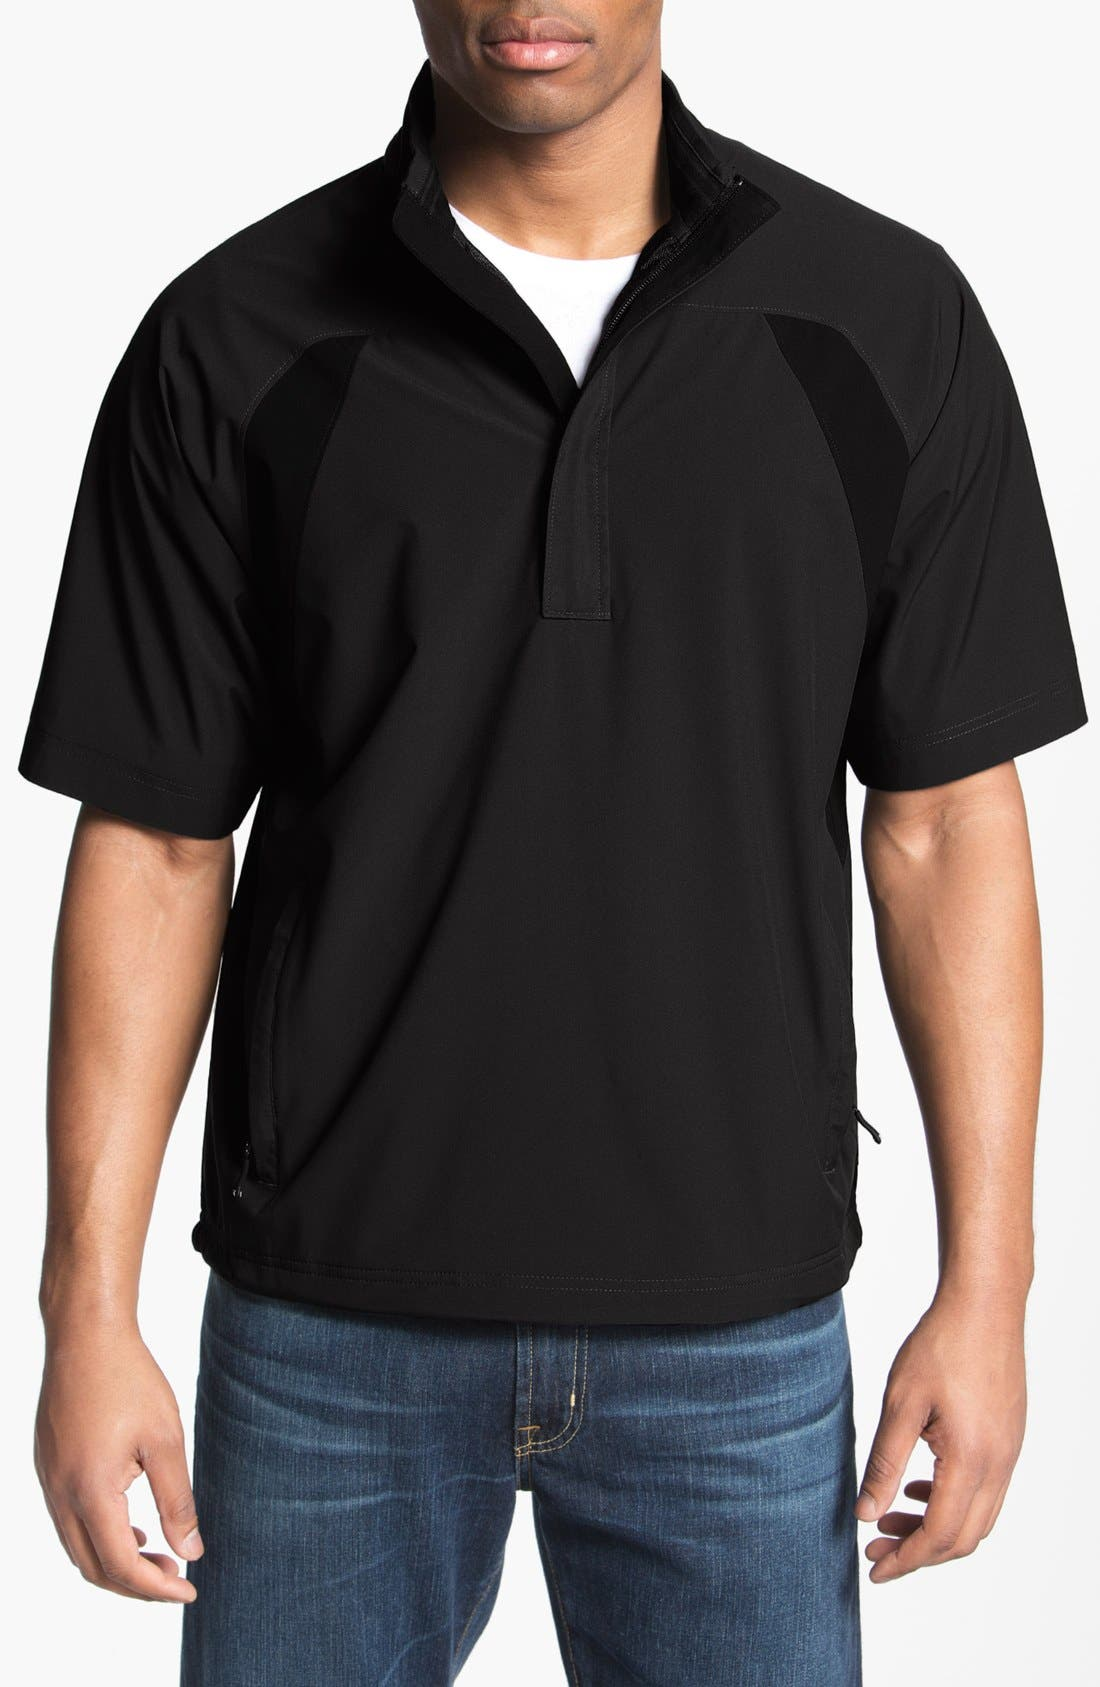 Main Image - Cutter & Buck 'Vital' Quarter Zip Short Sleeve Mid Layer